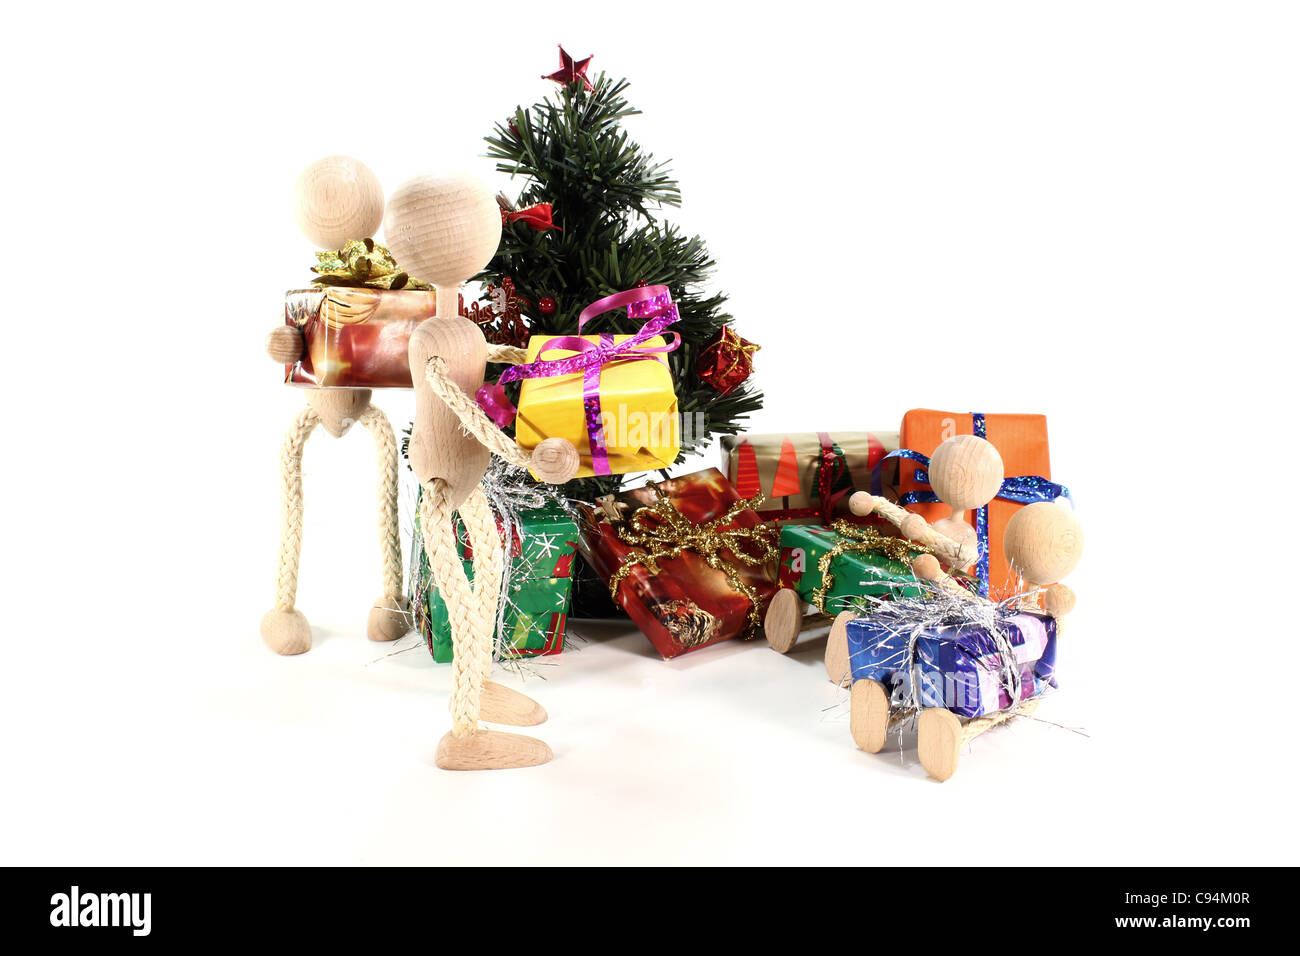 Wooden figures at the presents and Christmas tree with gifts - Stock Image